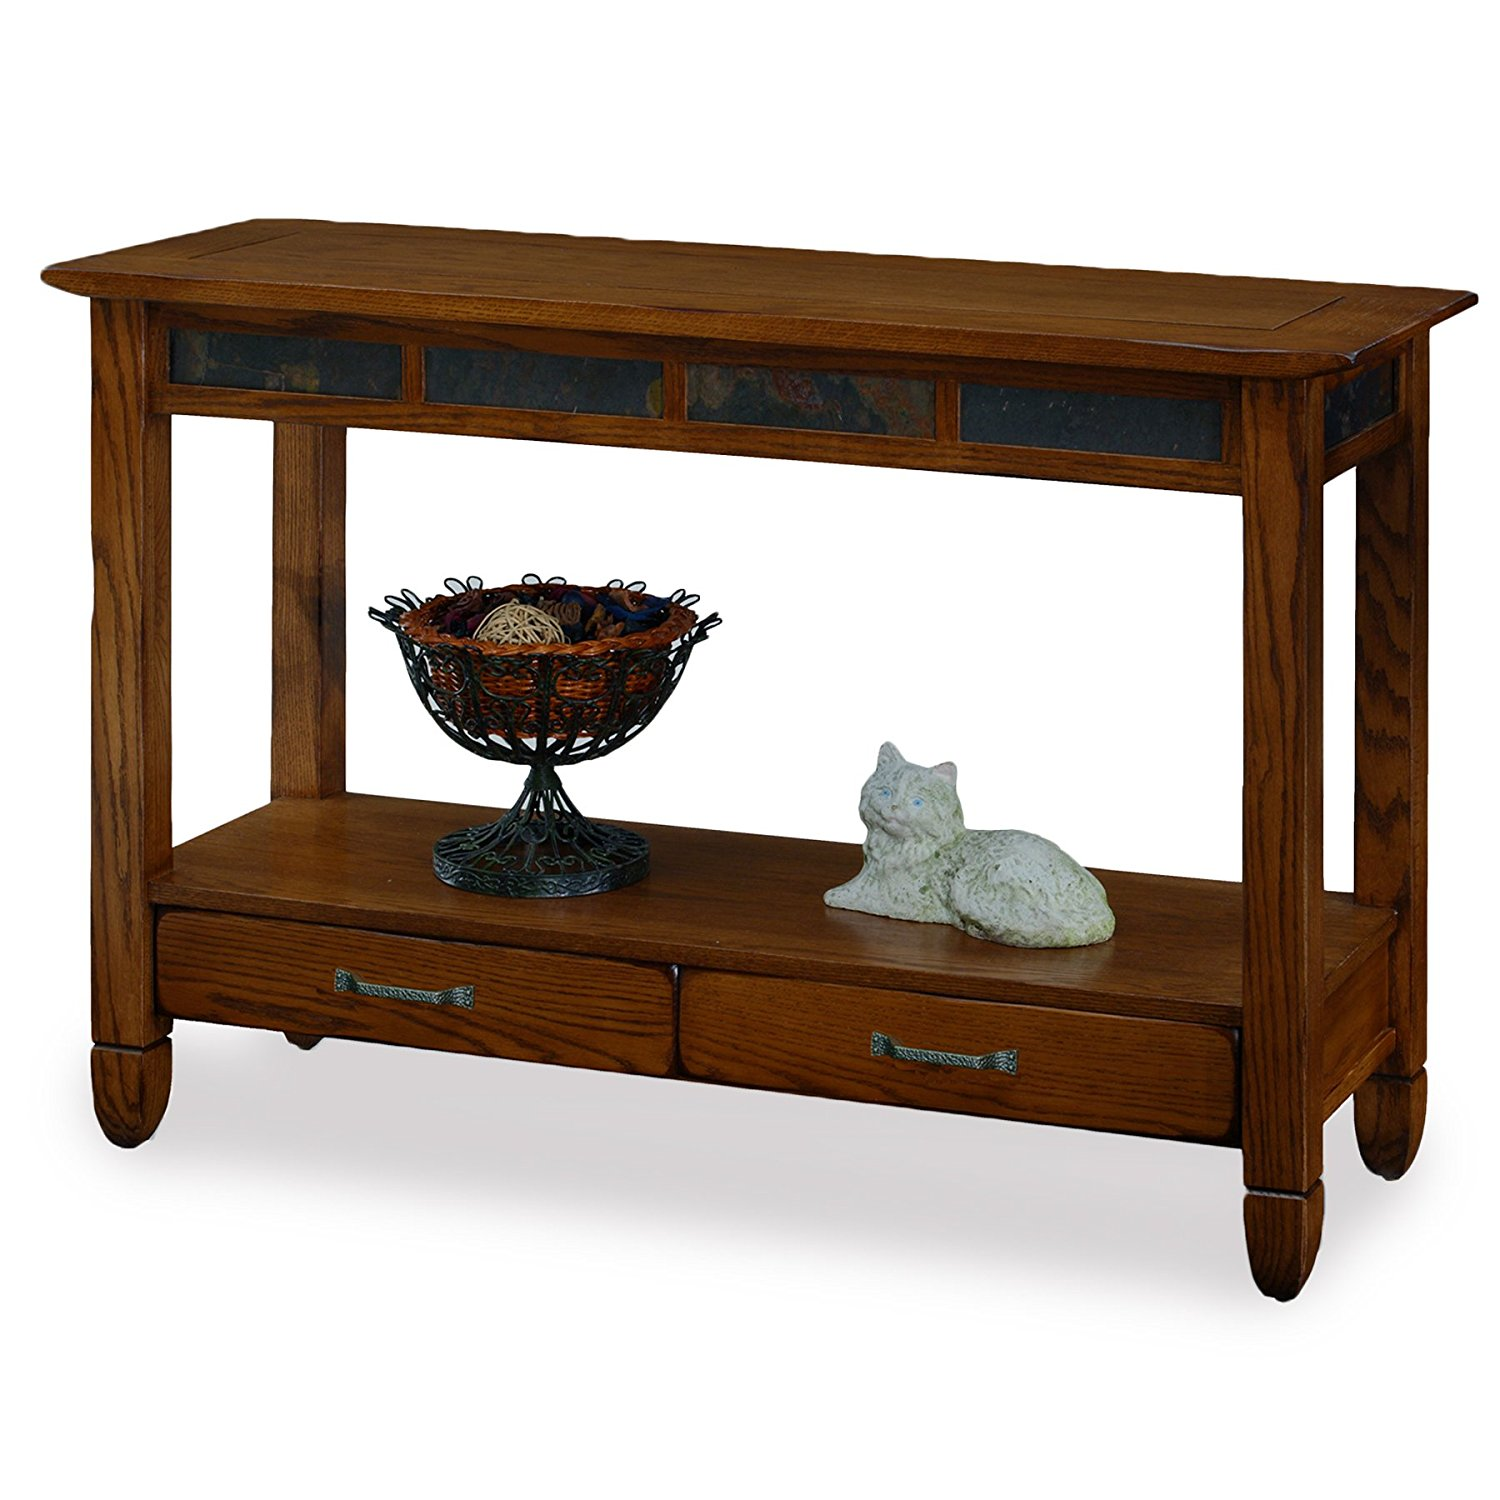 Get Quotations Slatestone Oak Storage Console Table Rustic Finish